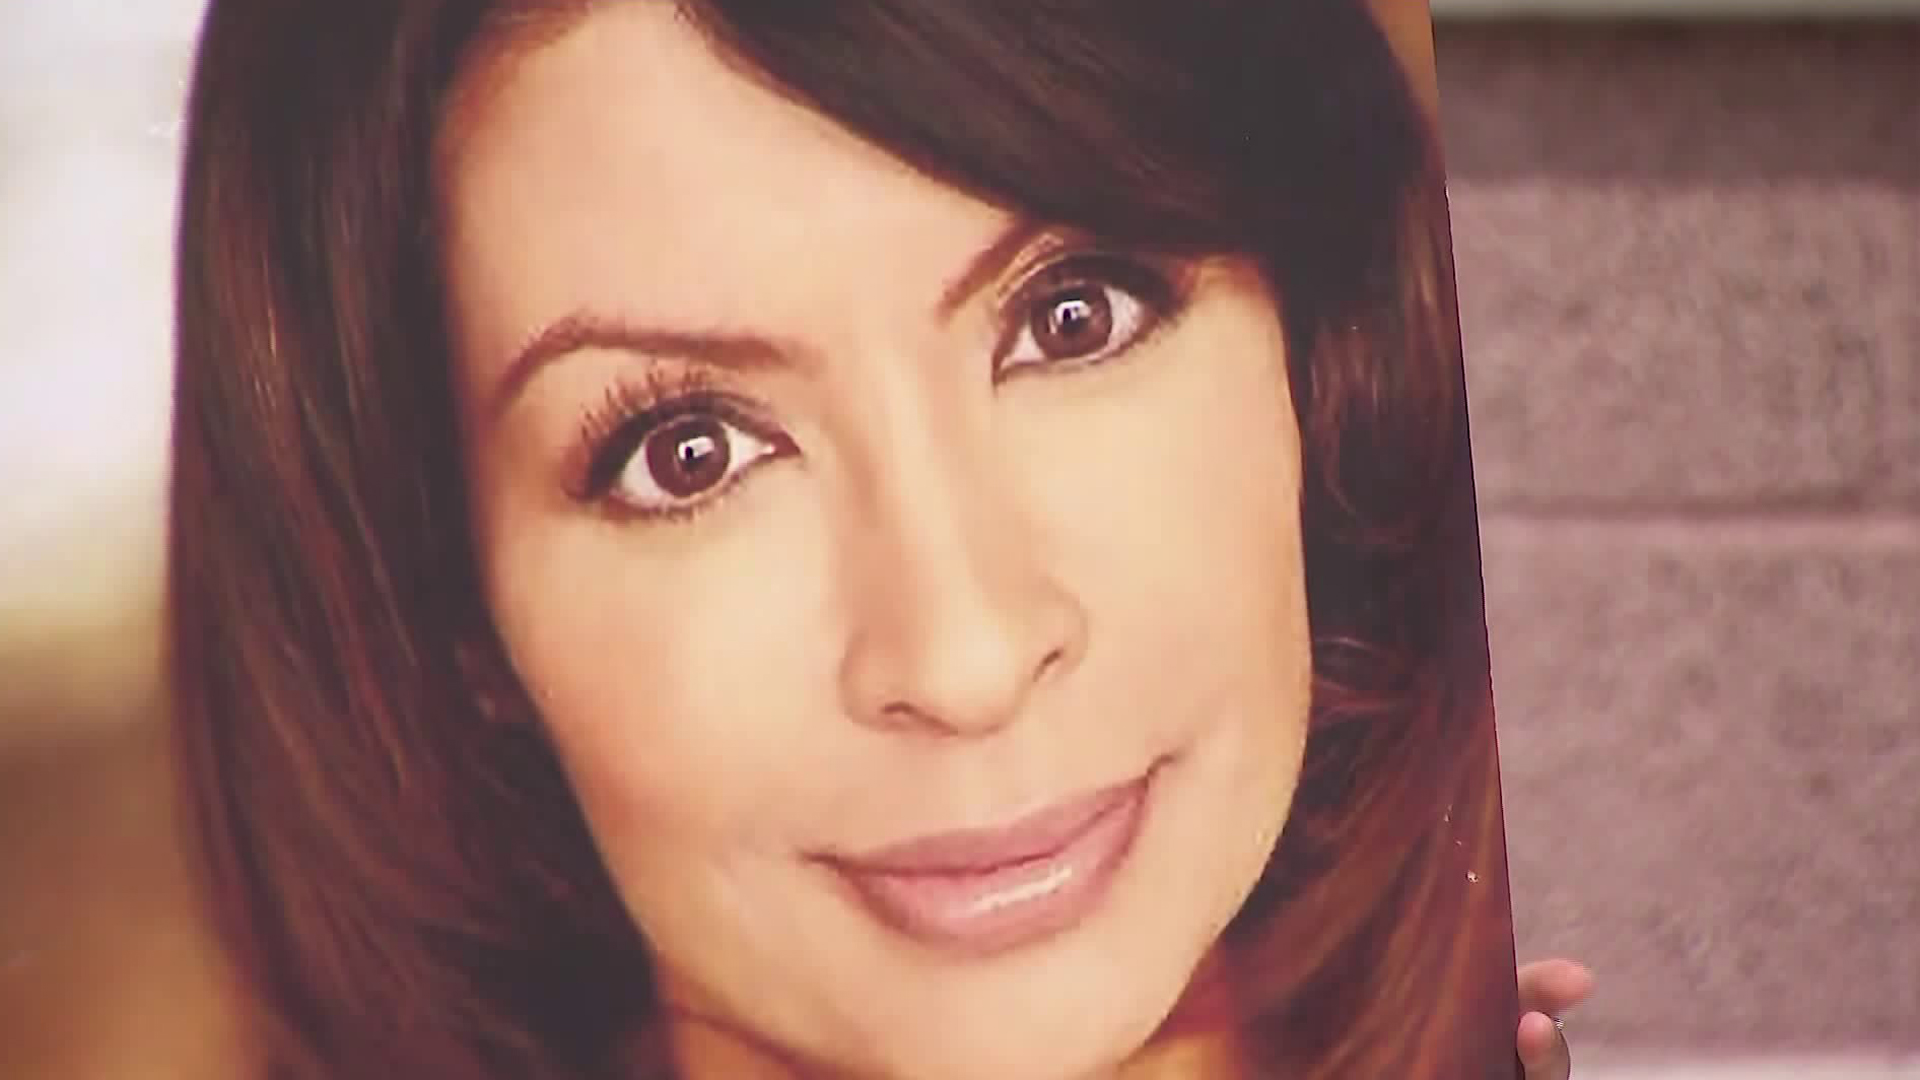 An undated photo of Vanessa Marquez is held by a demonstrator during a news conference announcing a wrongful death lawsuit on June 24, 2020. (KTLA)